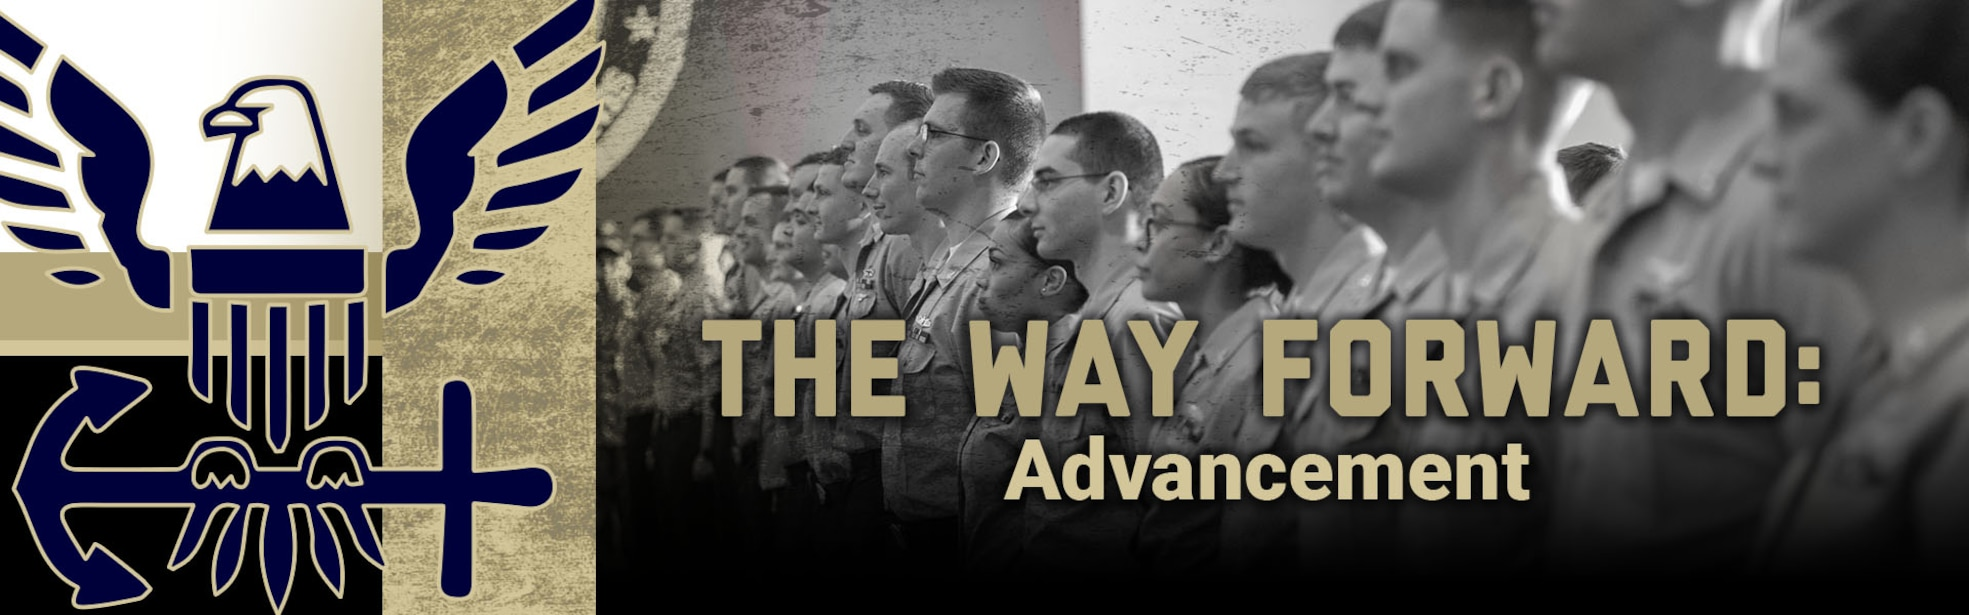 The Way Forward: Advancement banner showing black and white picture of sailors with gold accent